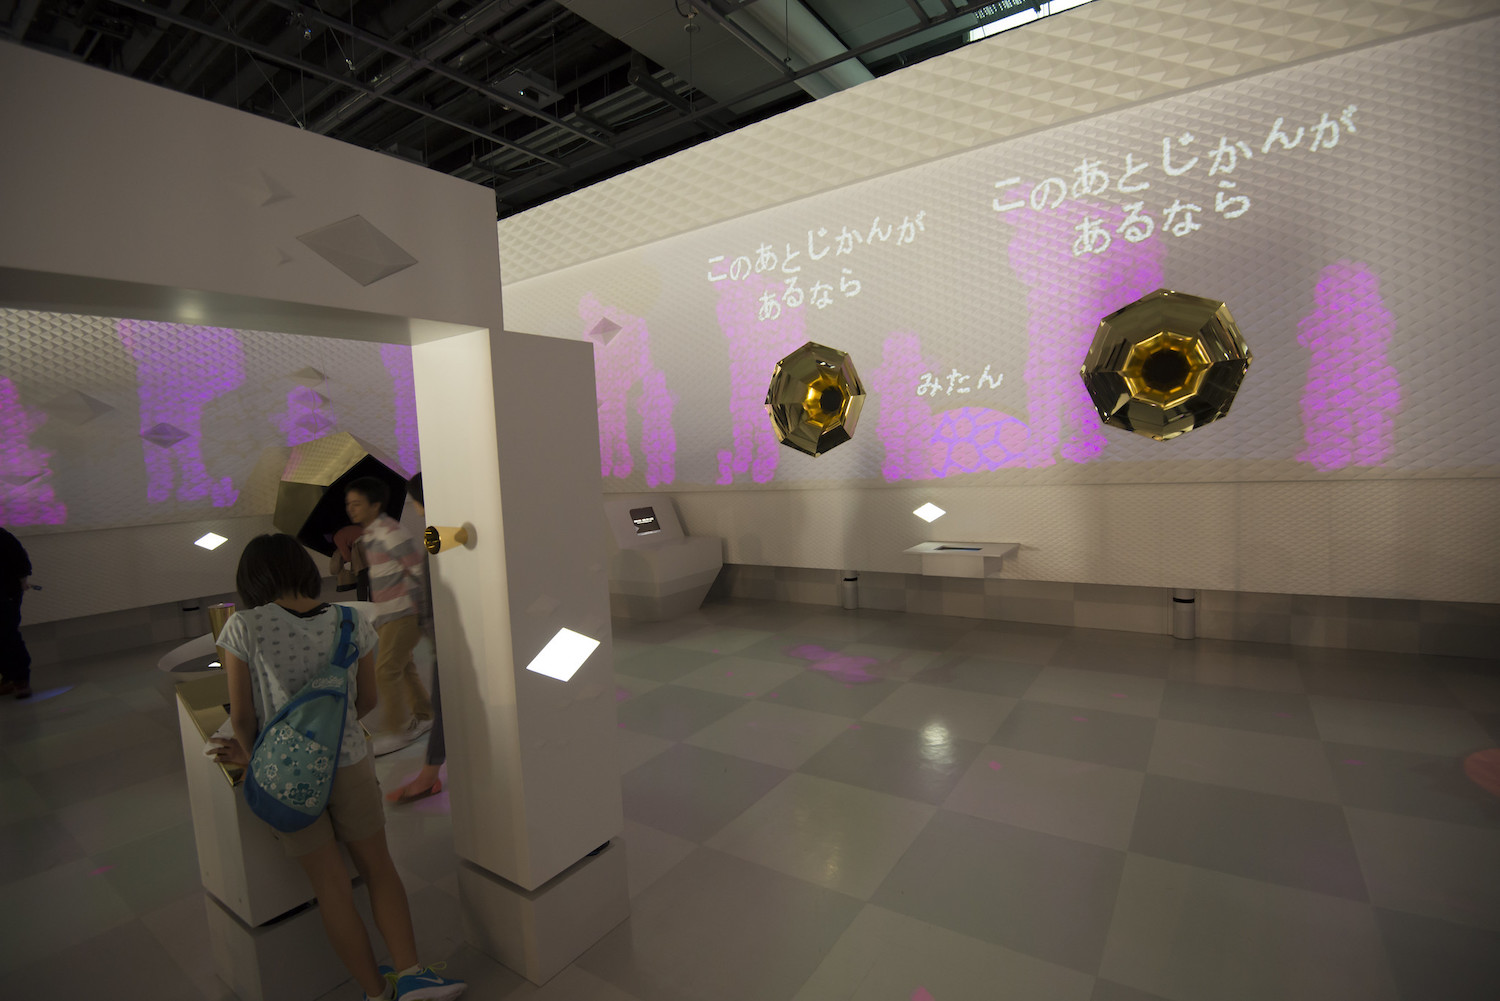 things to do tokyo with kids - Miraikan in Odaiba